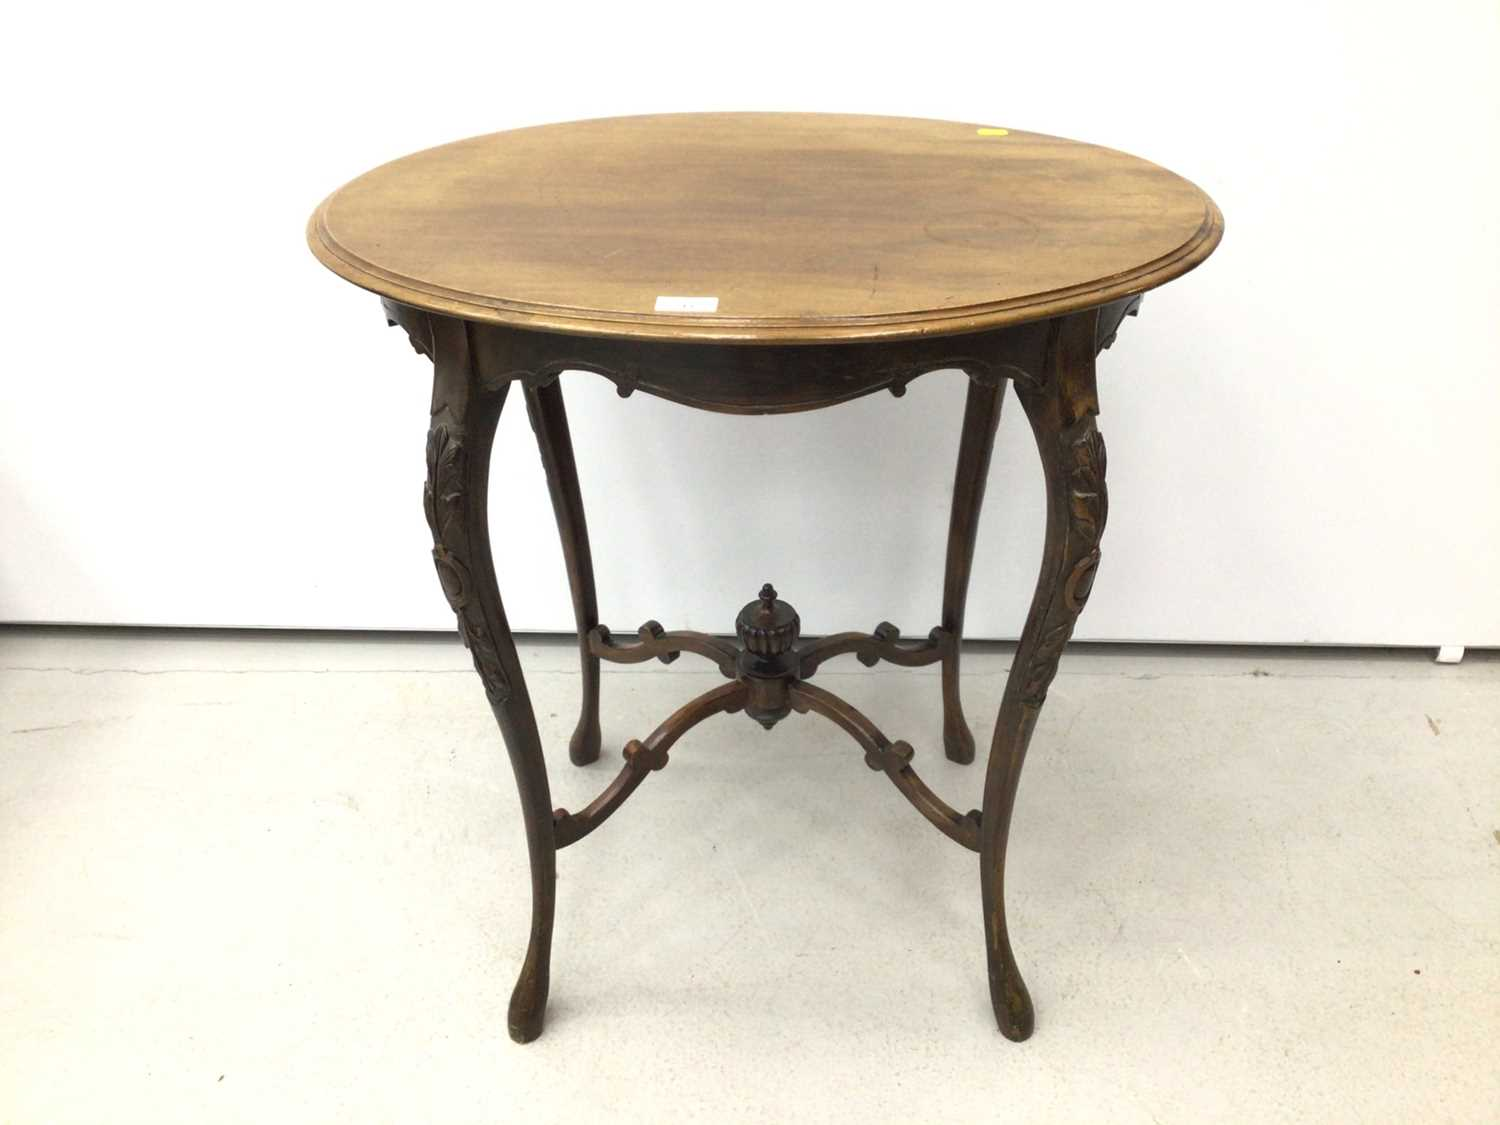 Edwardian mahogany oval occasional table on slender cabriole legs 68cm wide